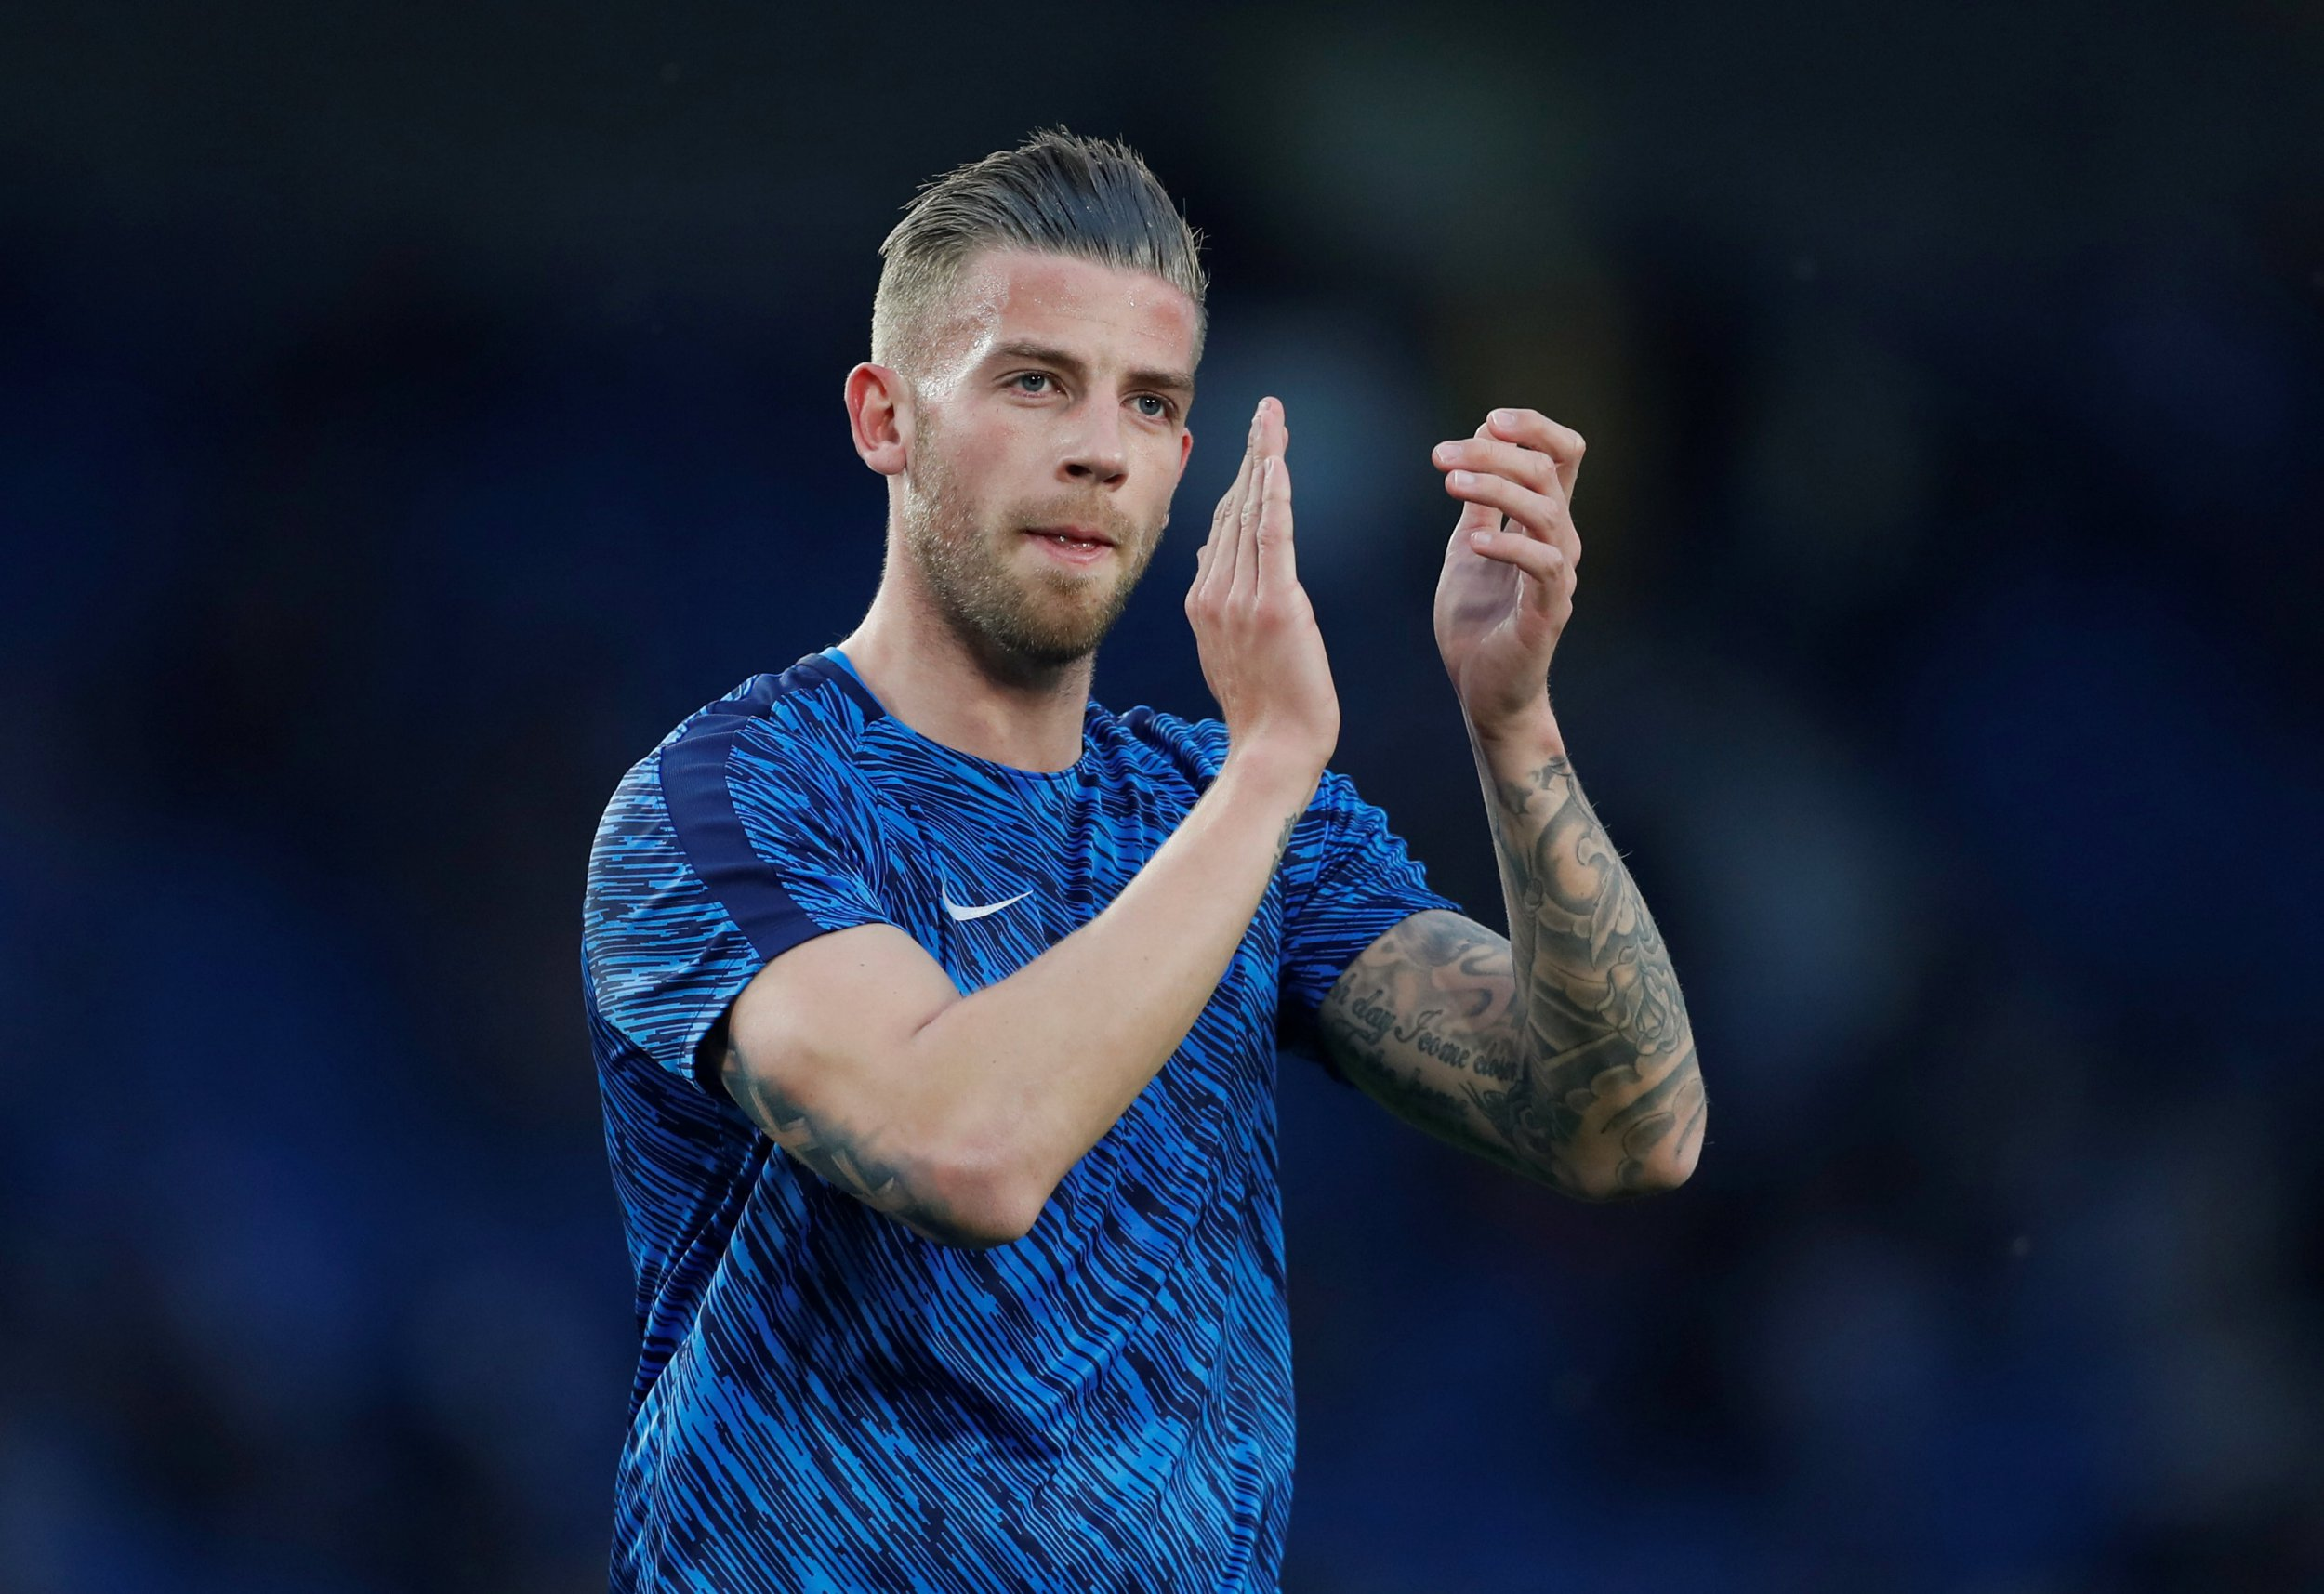 Tottenham Hotspur told they've made a huge mistake over Manchester United target Toby Alderweireld